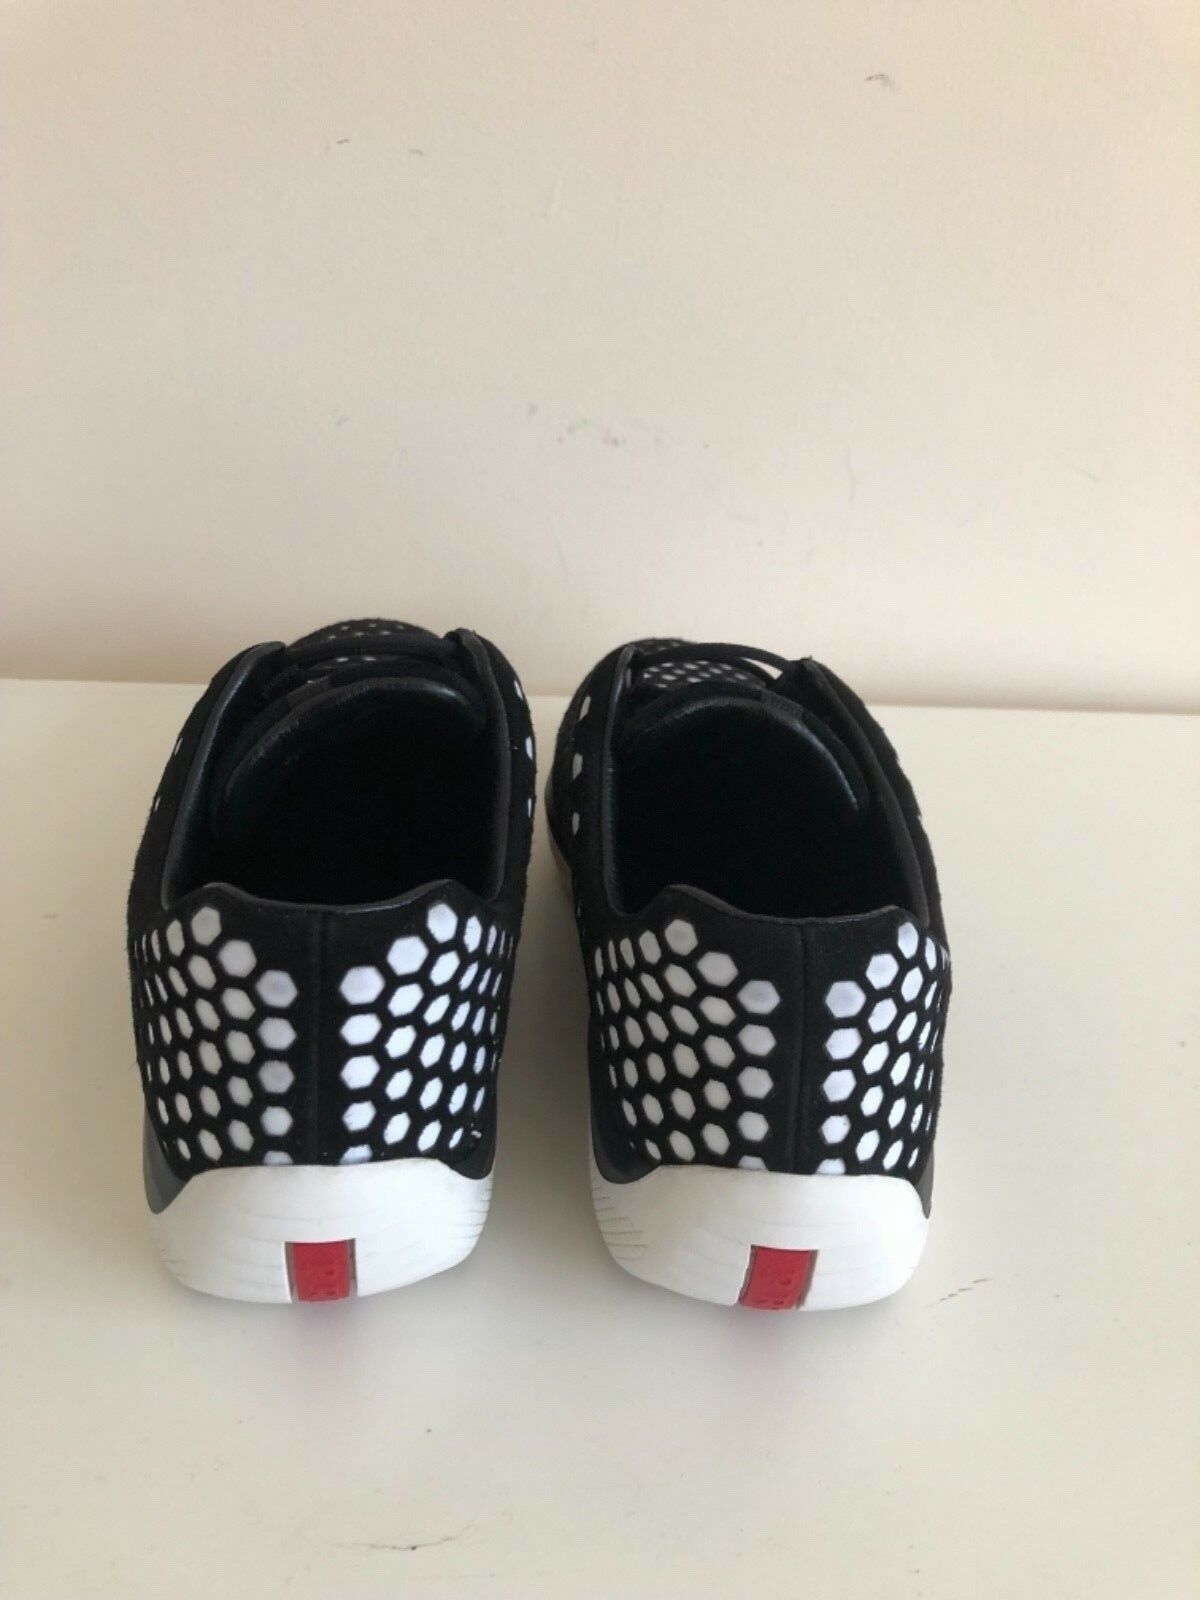 Prada Sport - Womens Sneakers Size 39 8.5    Black and White (Retail  595) bf03a0